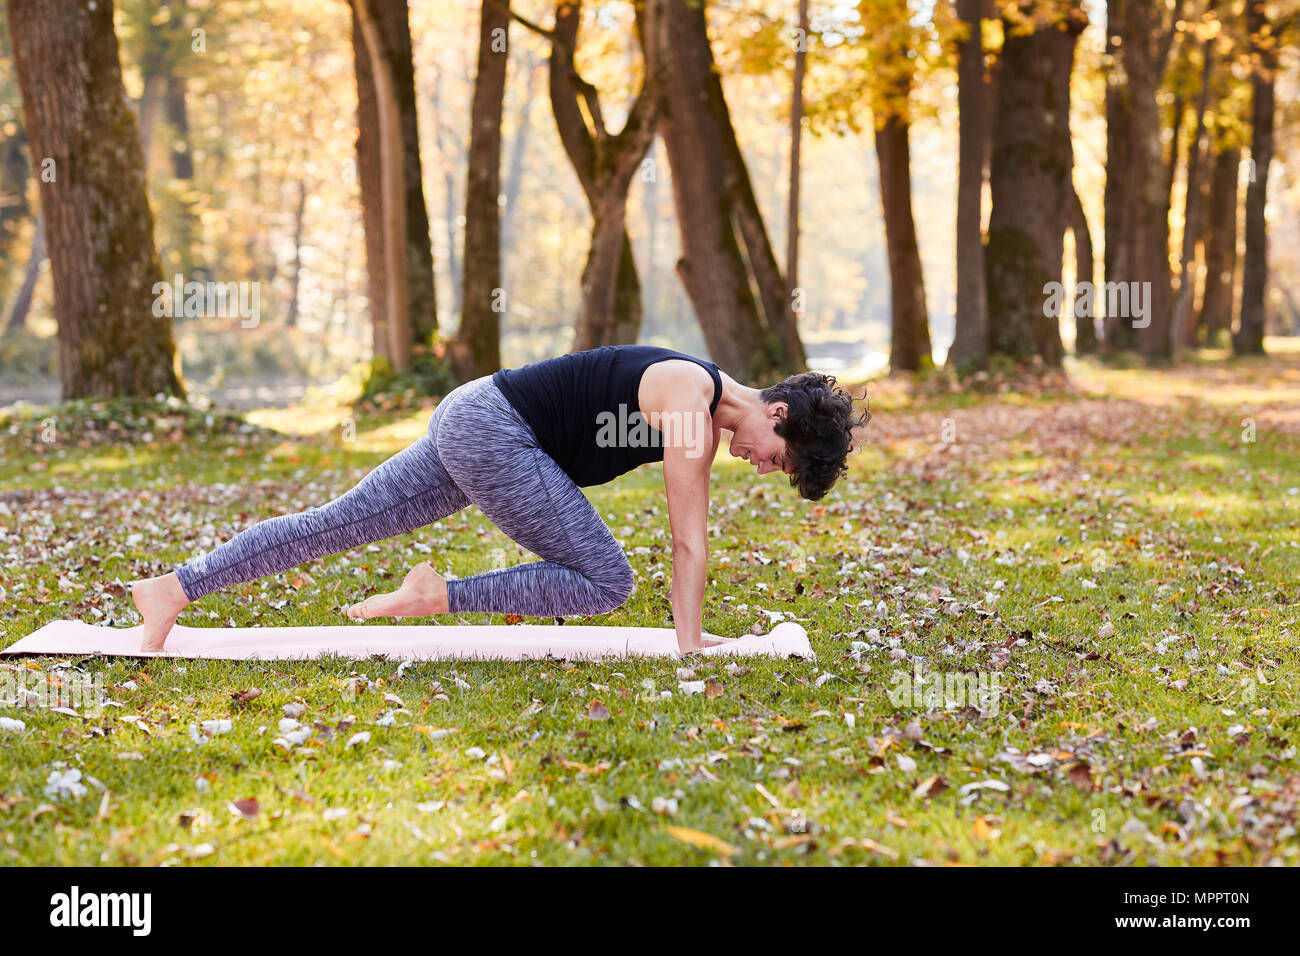 Mid adult woman in forest practicing yoga, climber exercise - Stock Image